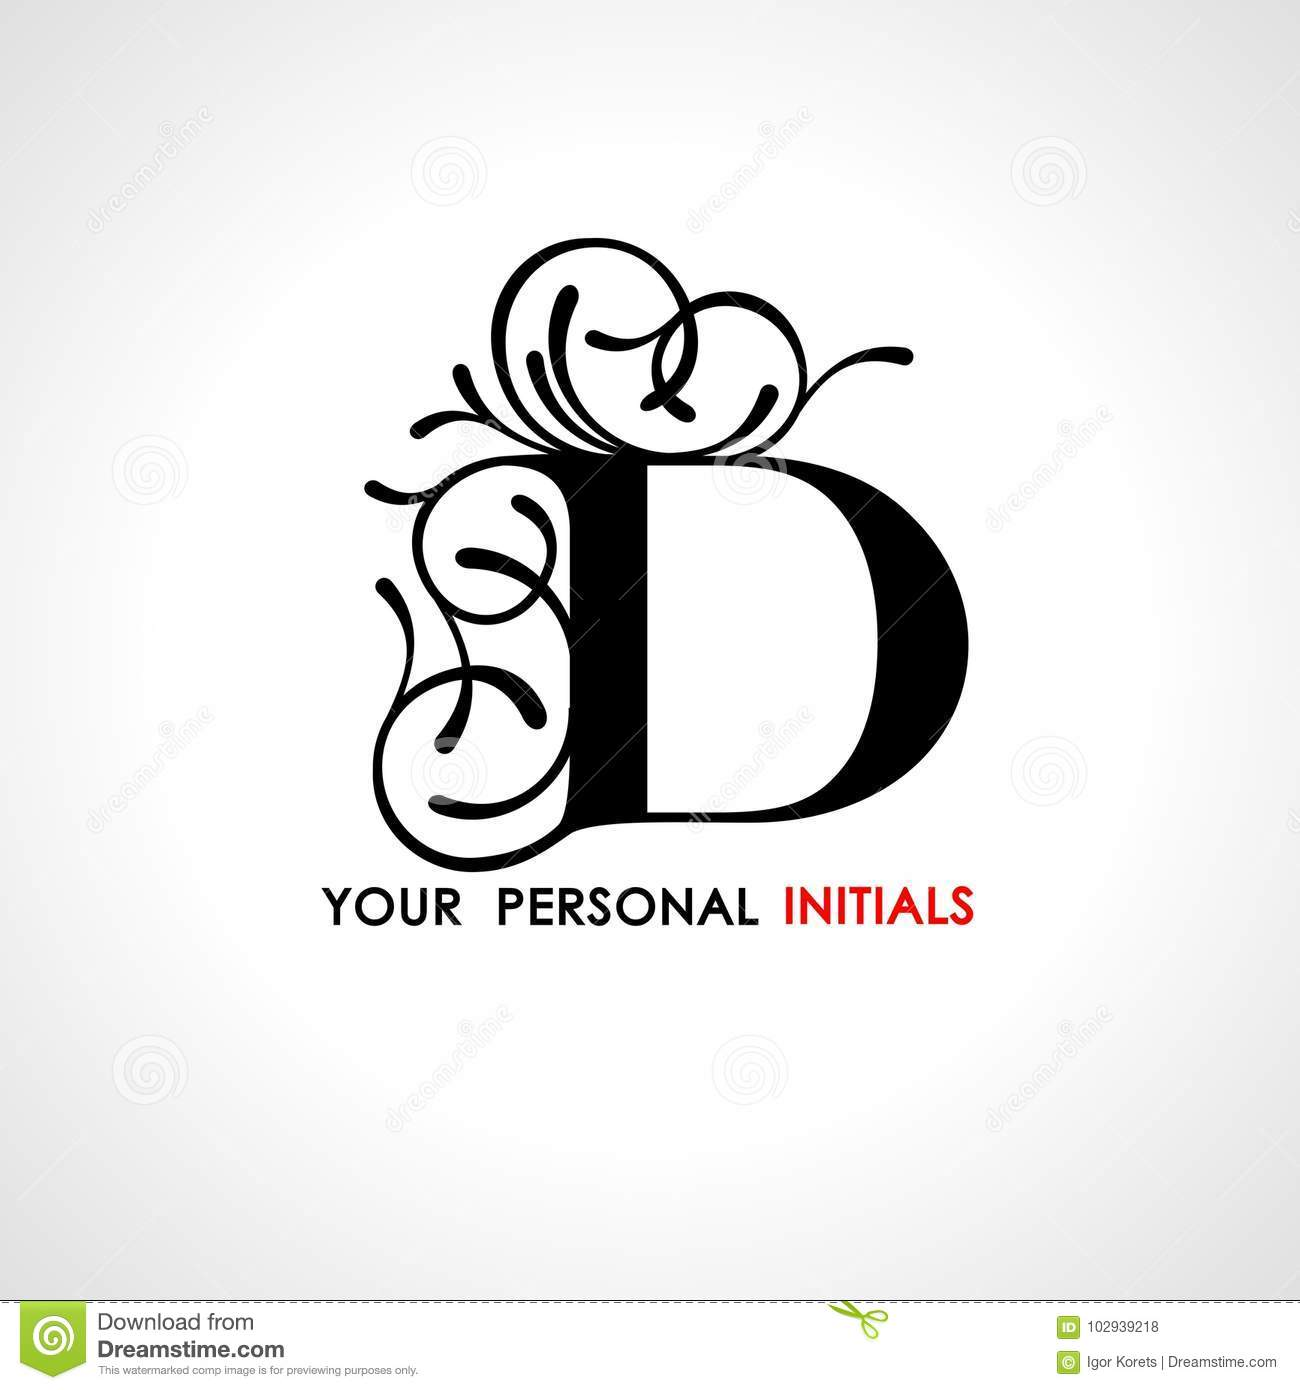 Capital Letter D Decorated With Vegetable Ornament Template For